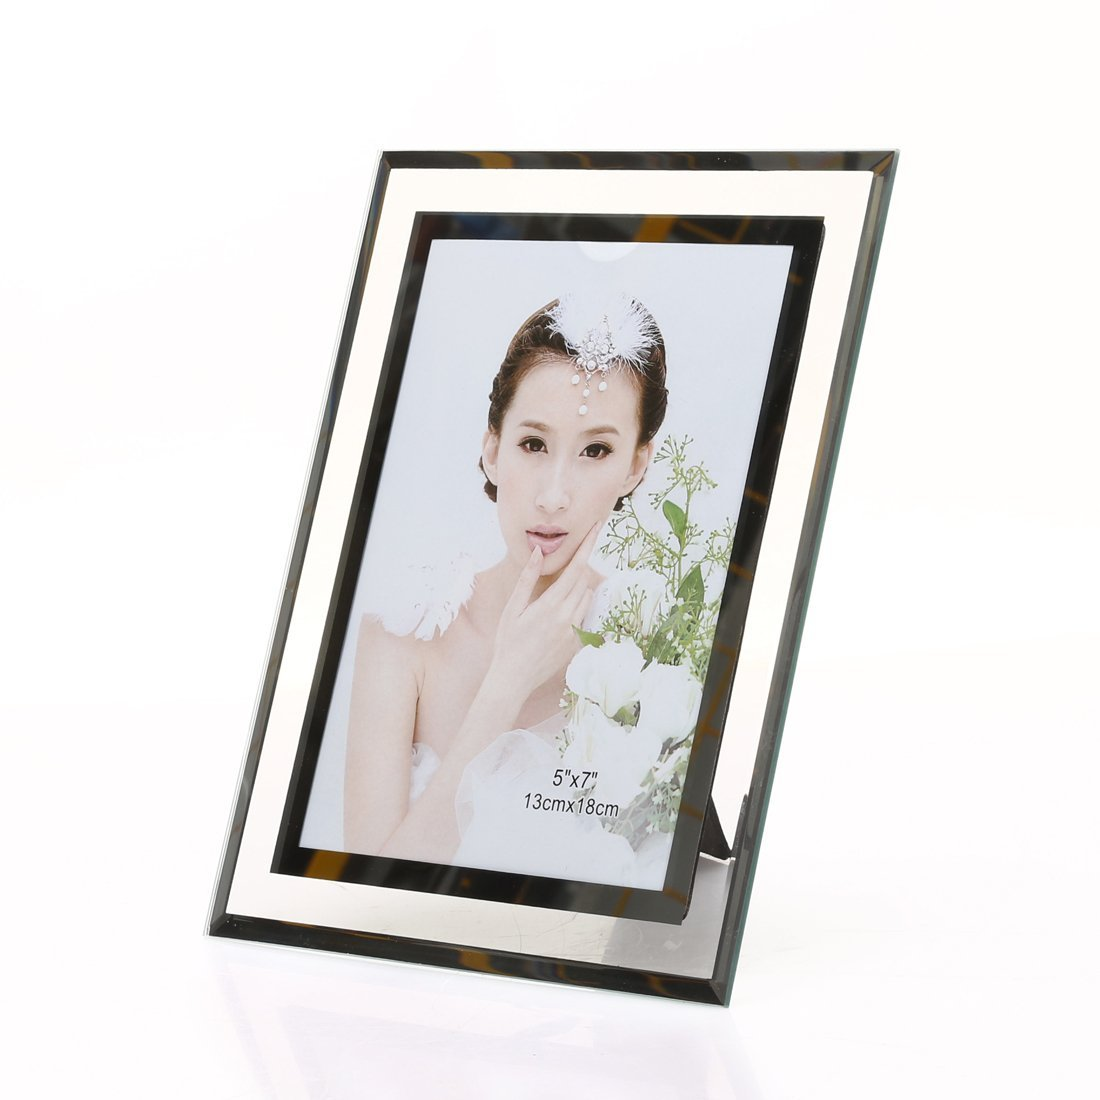 5x7-inch Glass Picture frame for Home Decor,Horizontal or Vertical Display